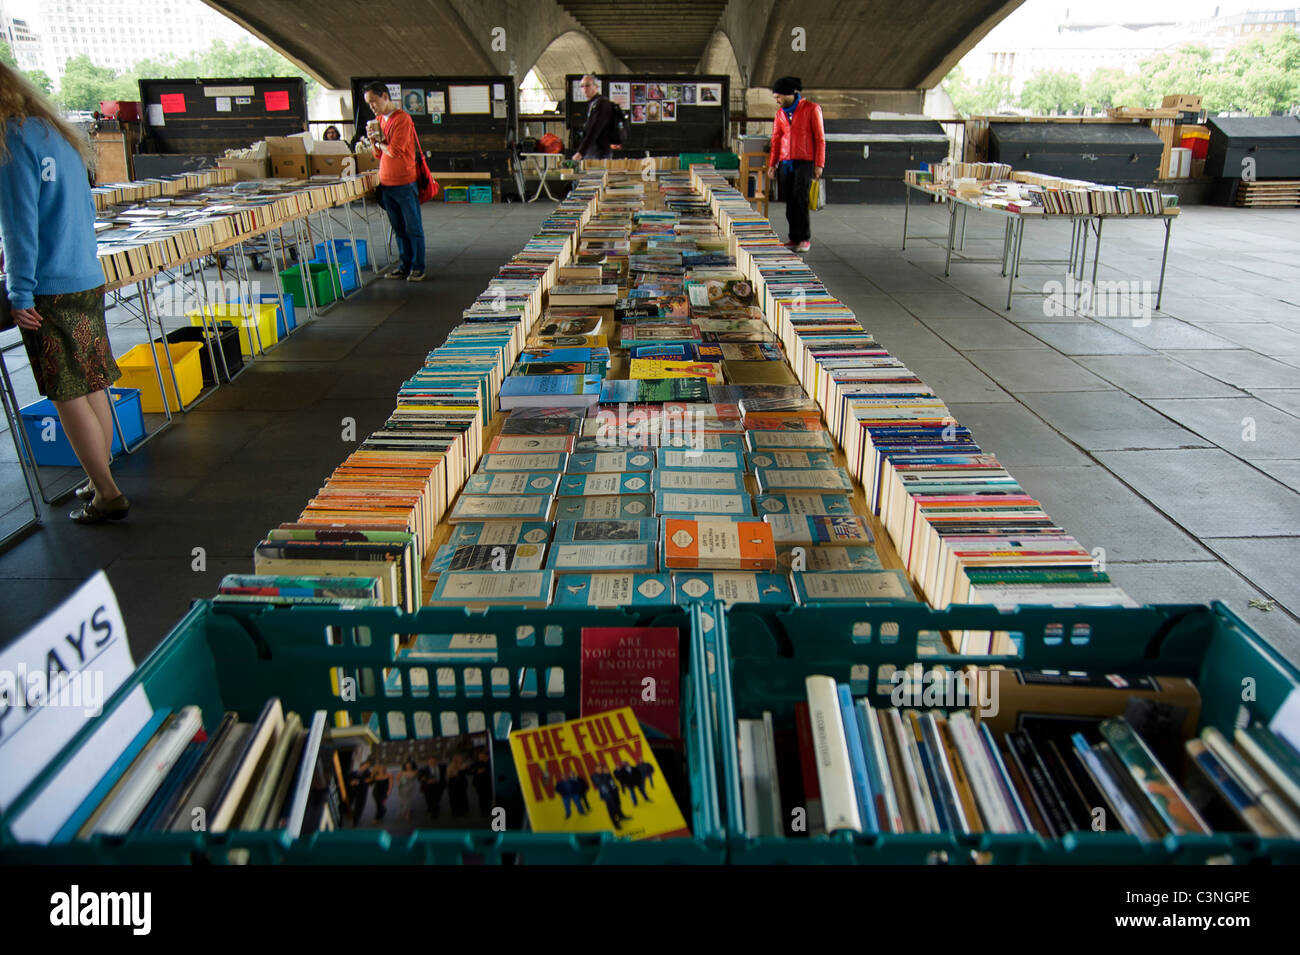 Southbank Centre's secondhand Book Market under Waterloo Bridge - Stock Image